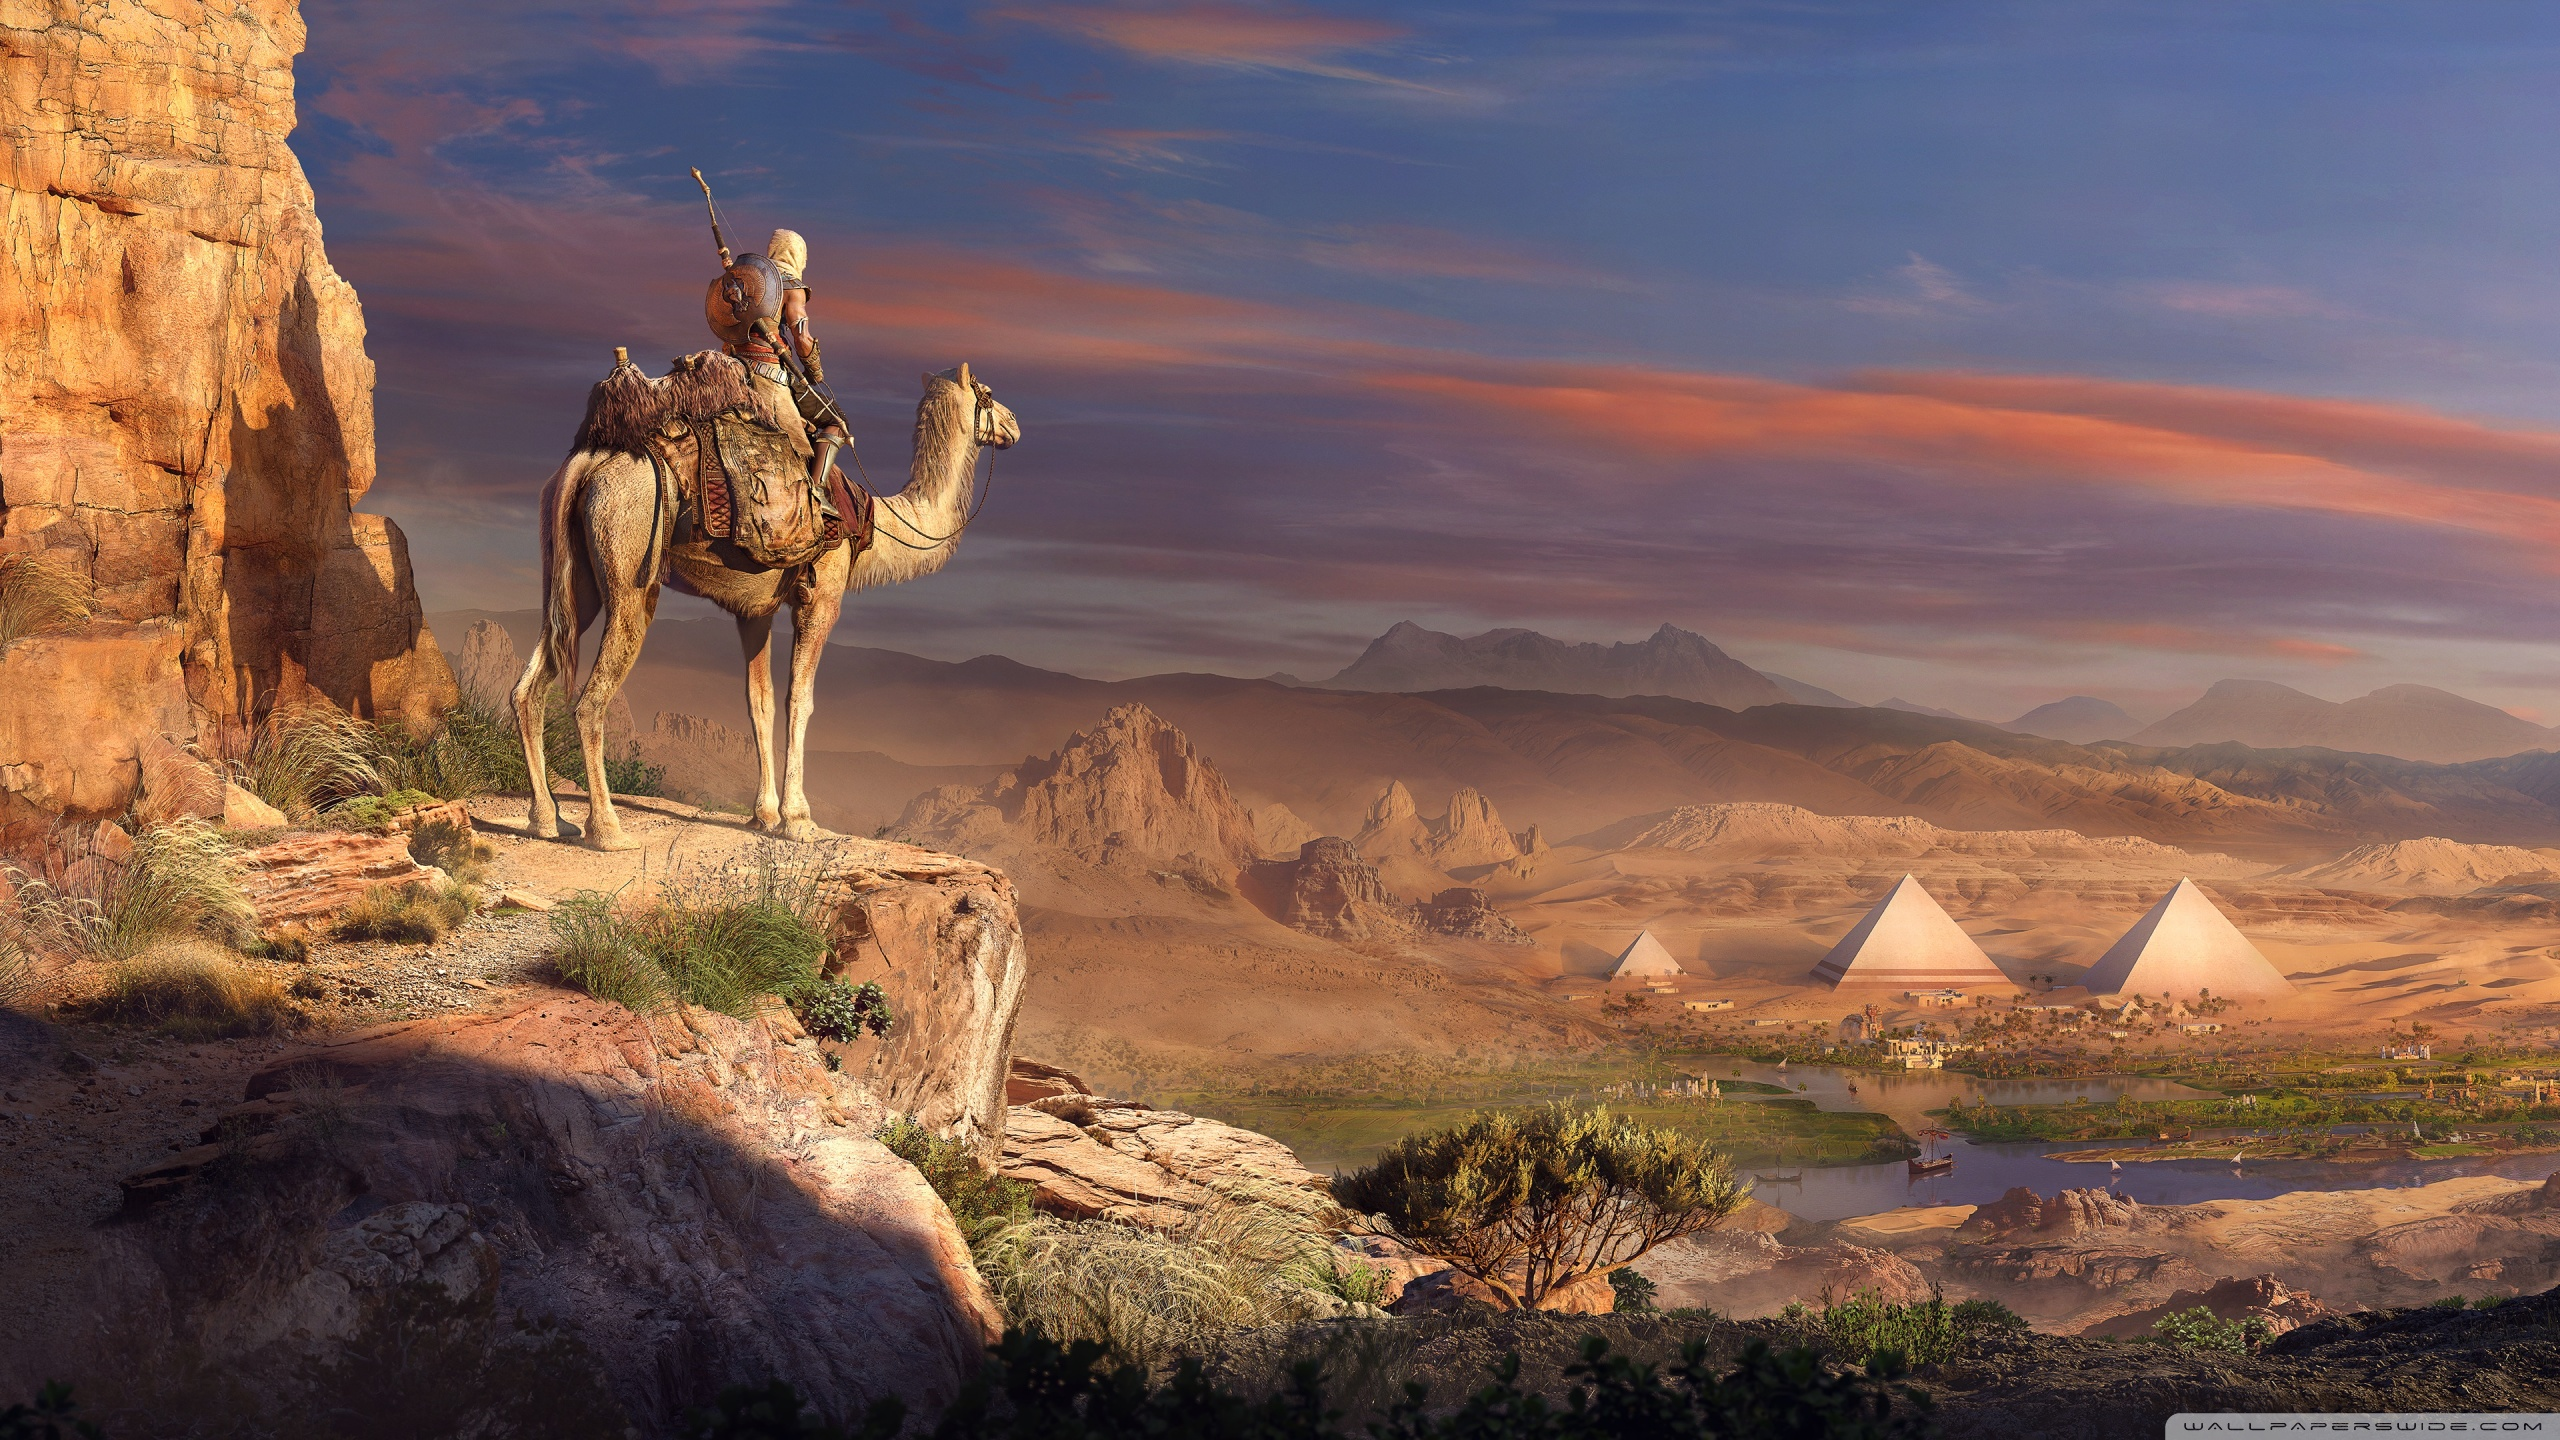 4k Assassins Creed Origins 2560x1440 Wallpaper Teahub Io